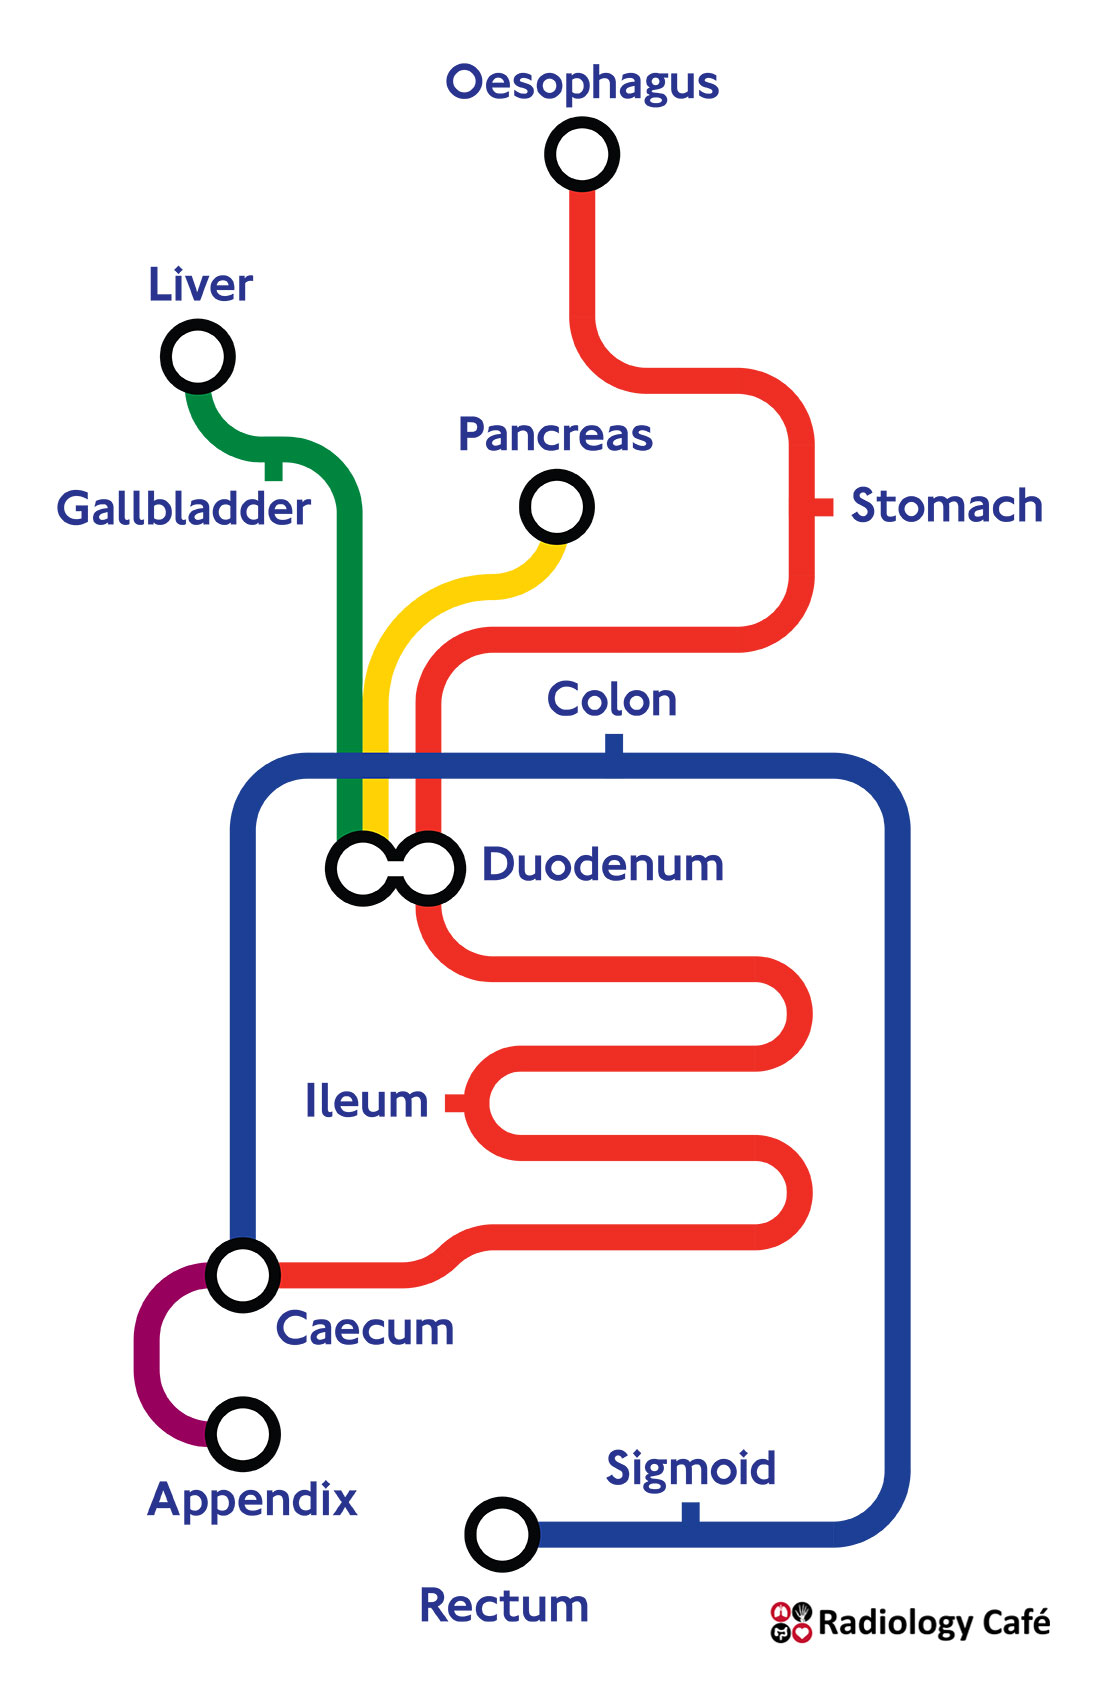 London Tube map of the digestive system